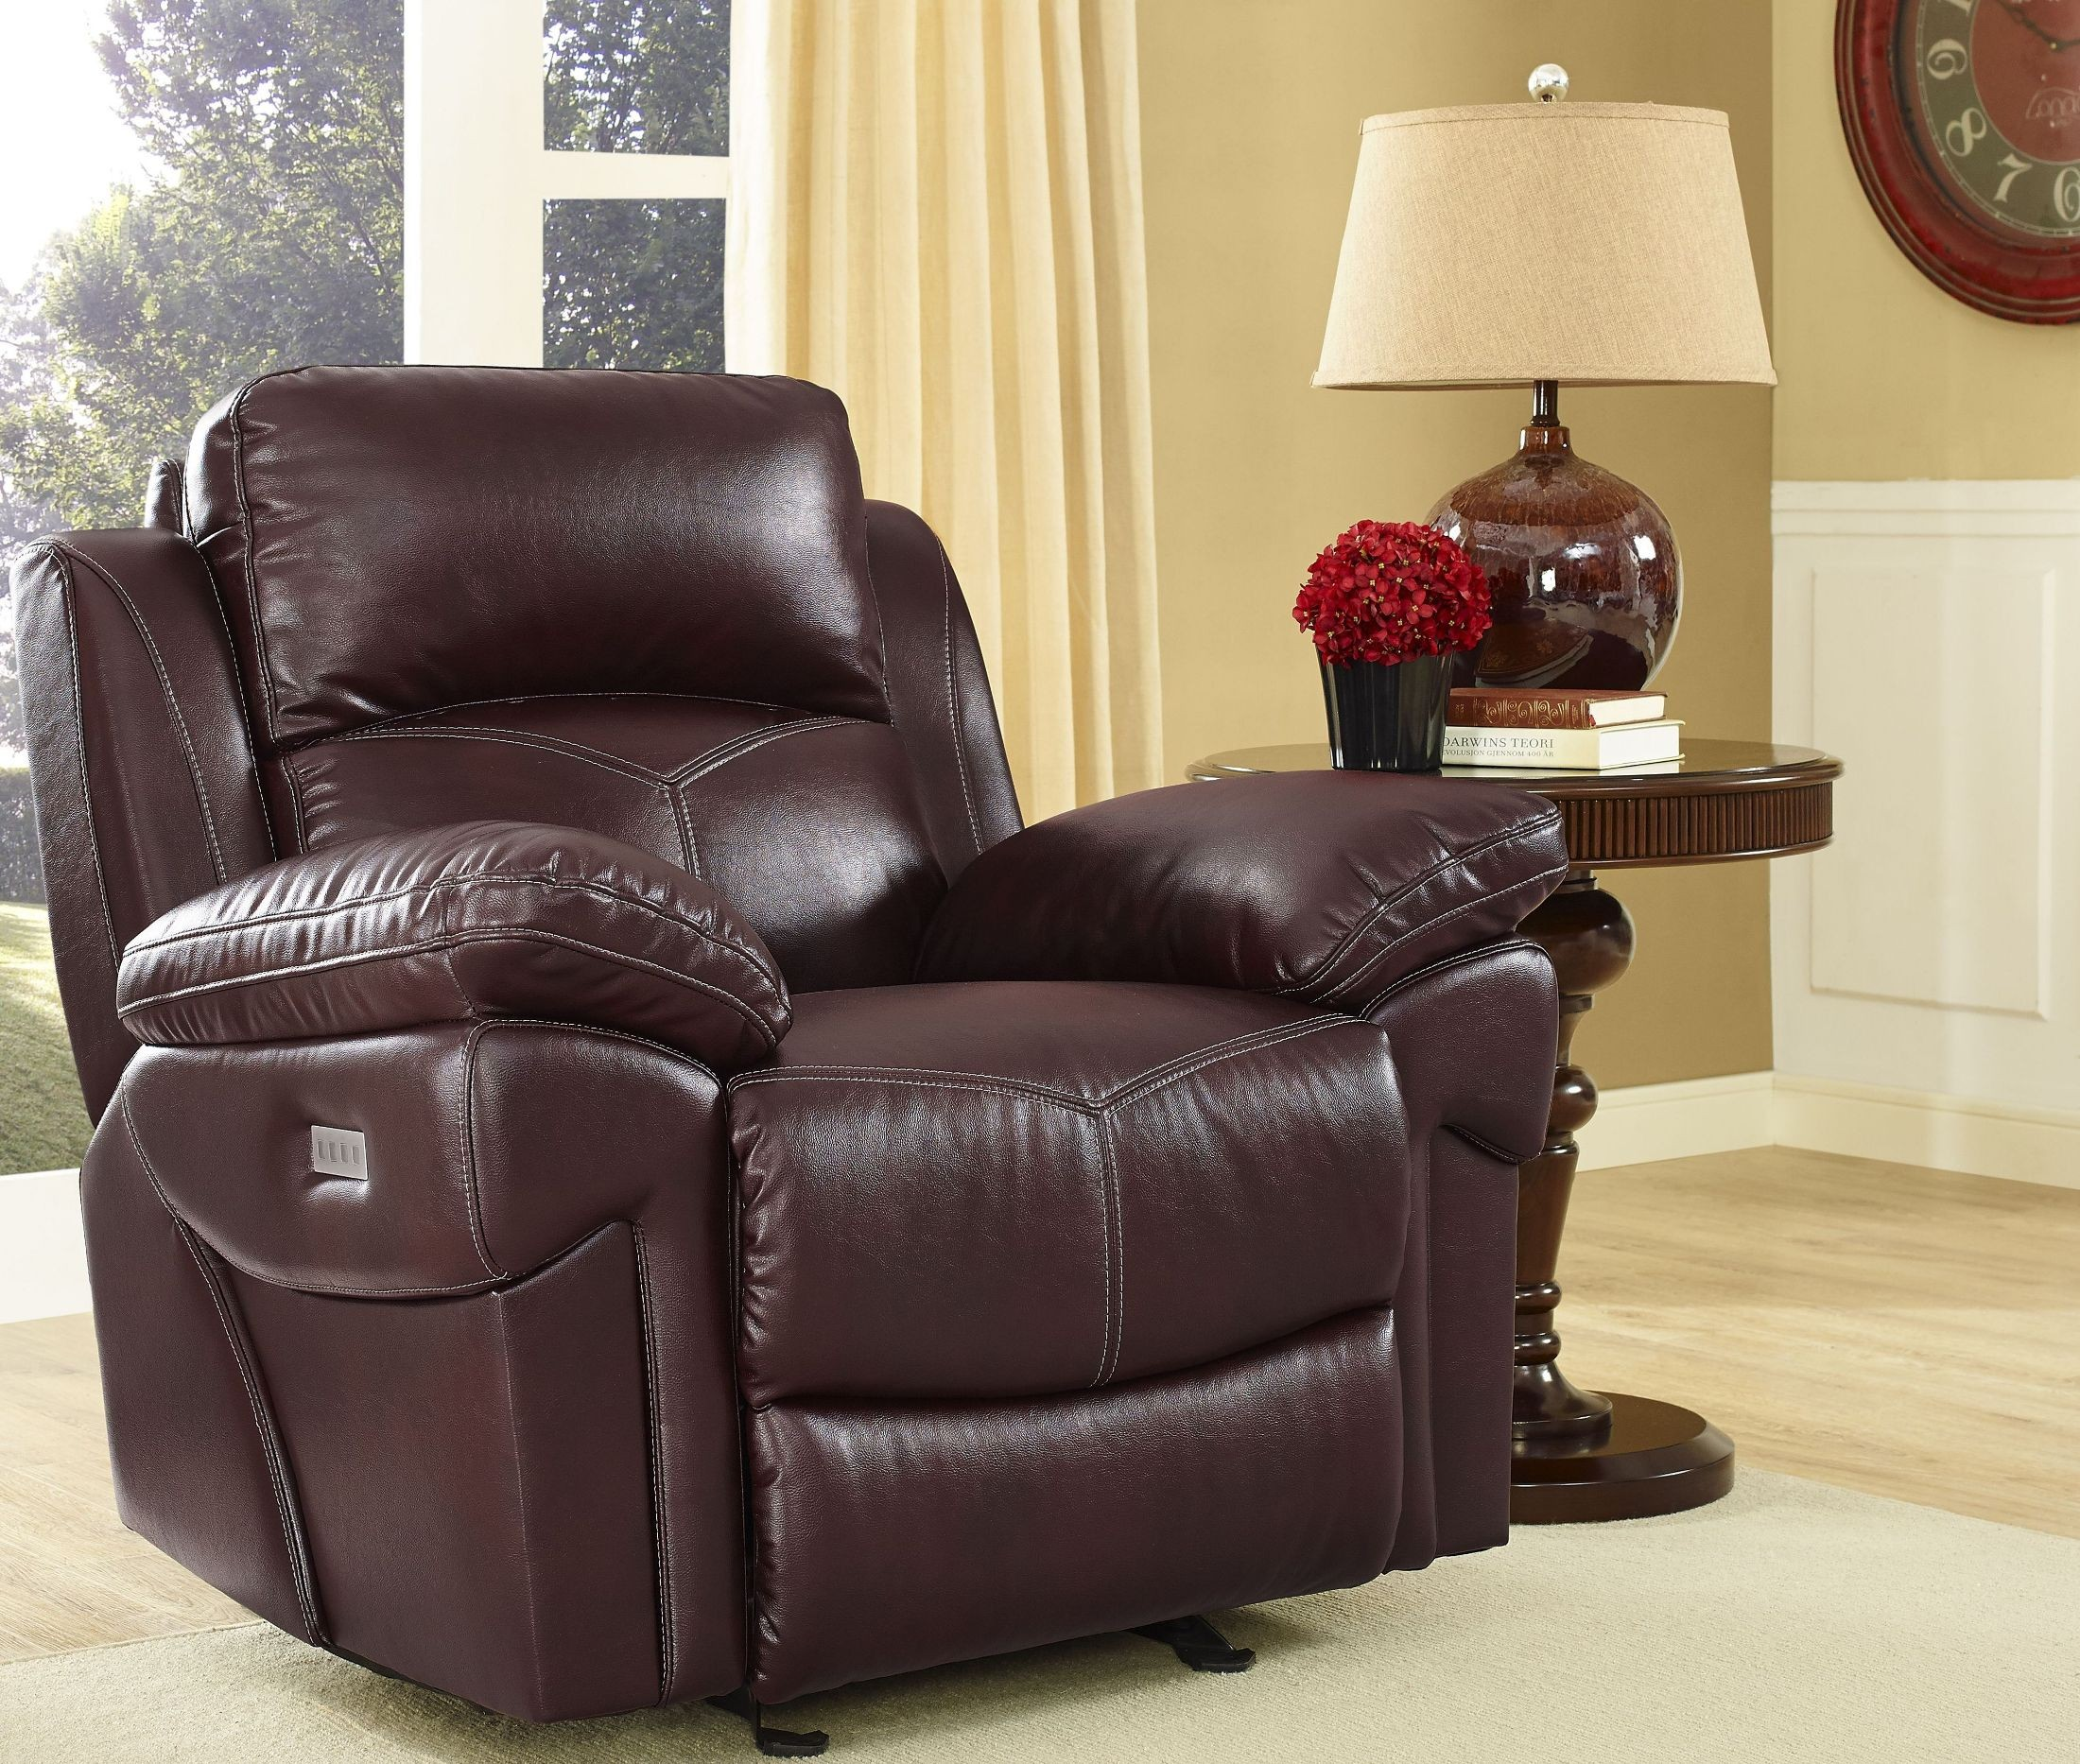 Warner Wine Power Glider Recliner from New Classic